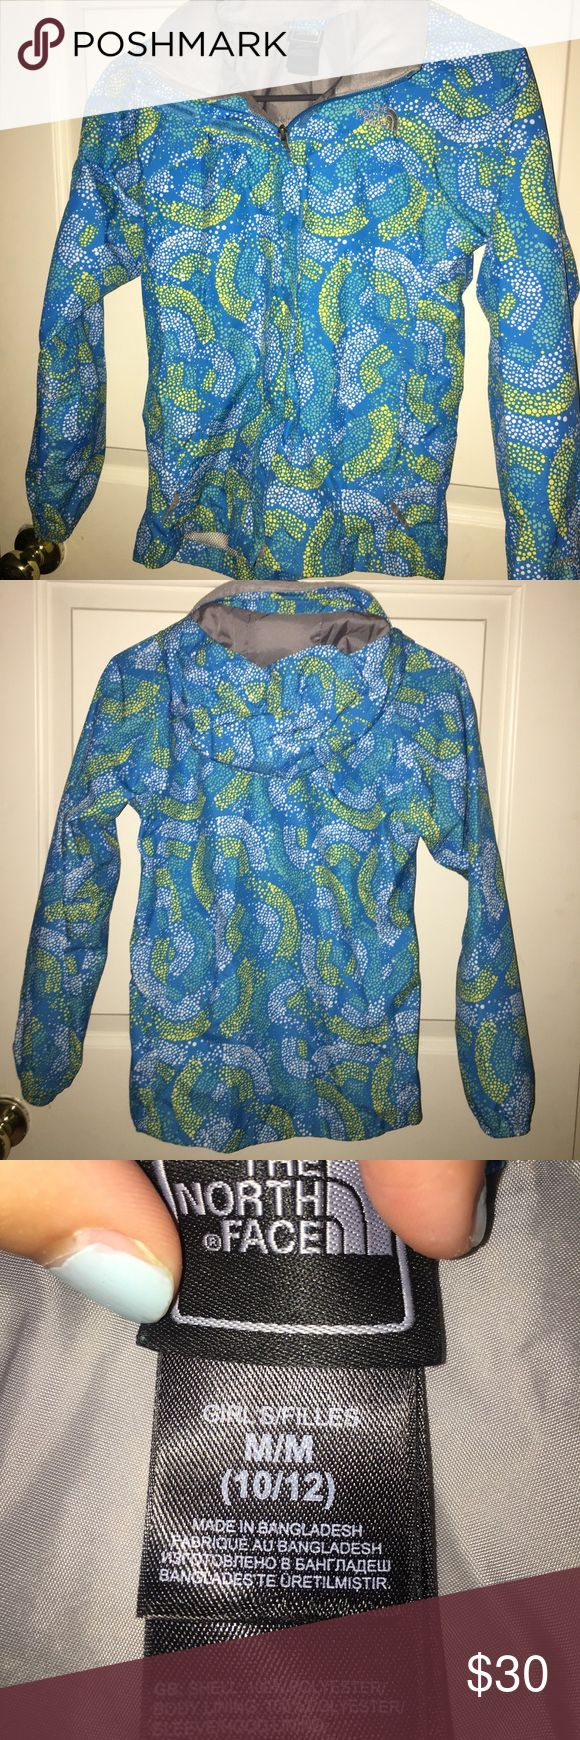 Girls north face rain jacket Blue, yellow, and white girls rain jacket size medium. Barely worn and great condition! North Face Jackets & Coats Raincoats